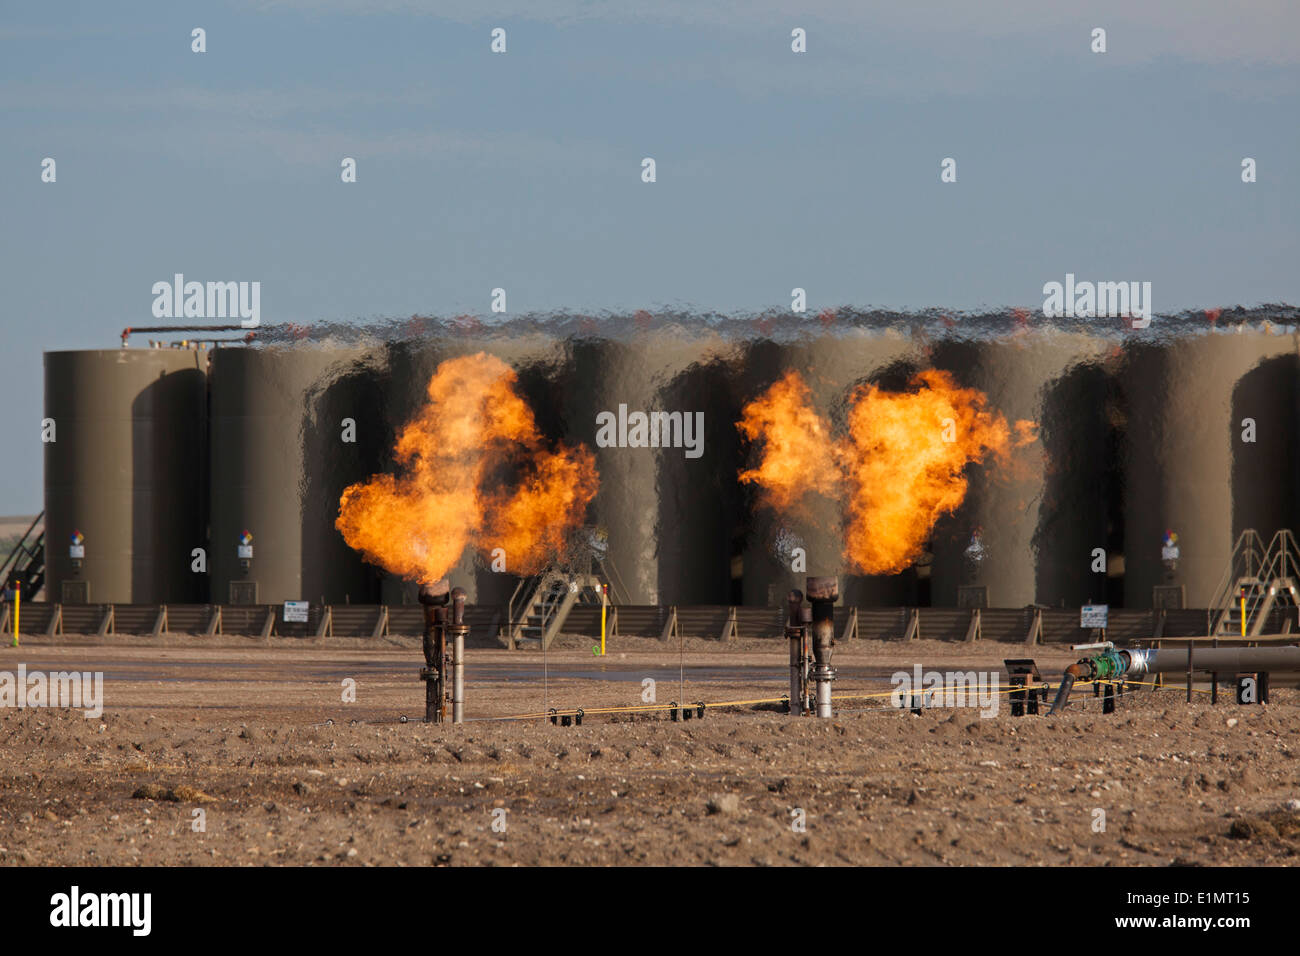 Watford City, North Dakota - Natural gas is flared off as oil is pumped in the Bakken shale formation. - Stock Image